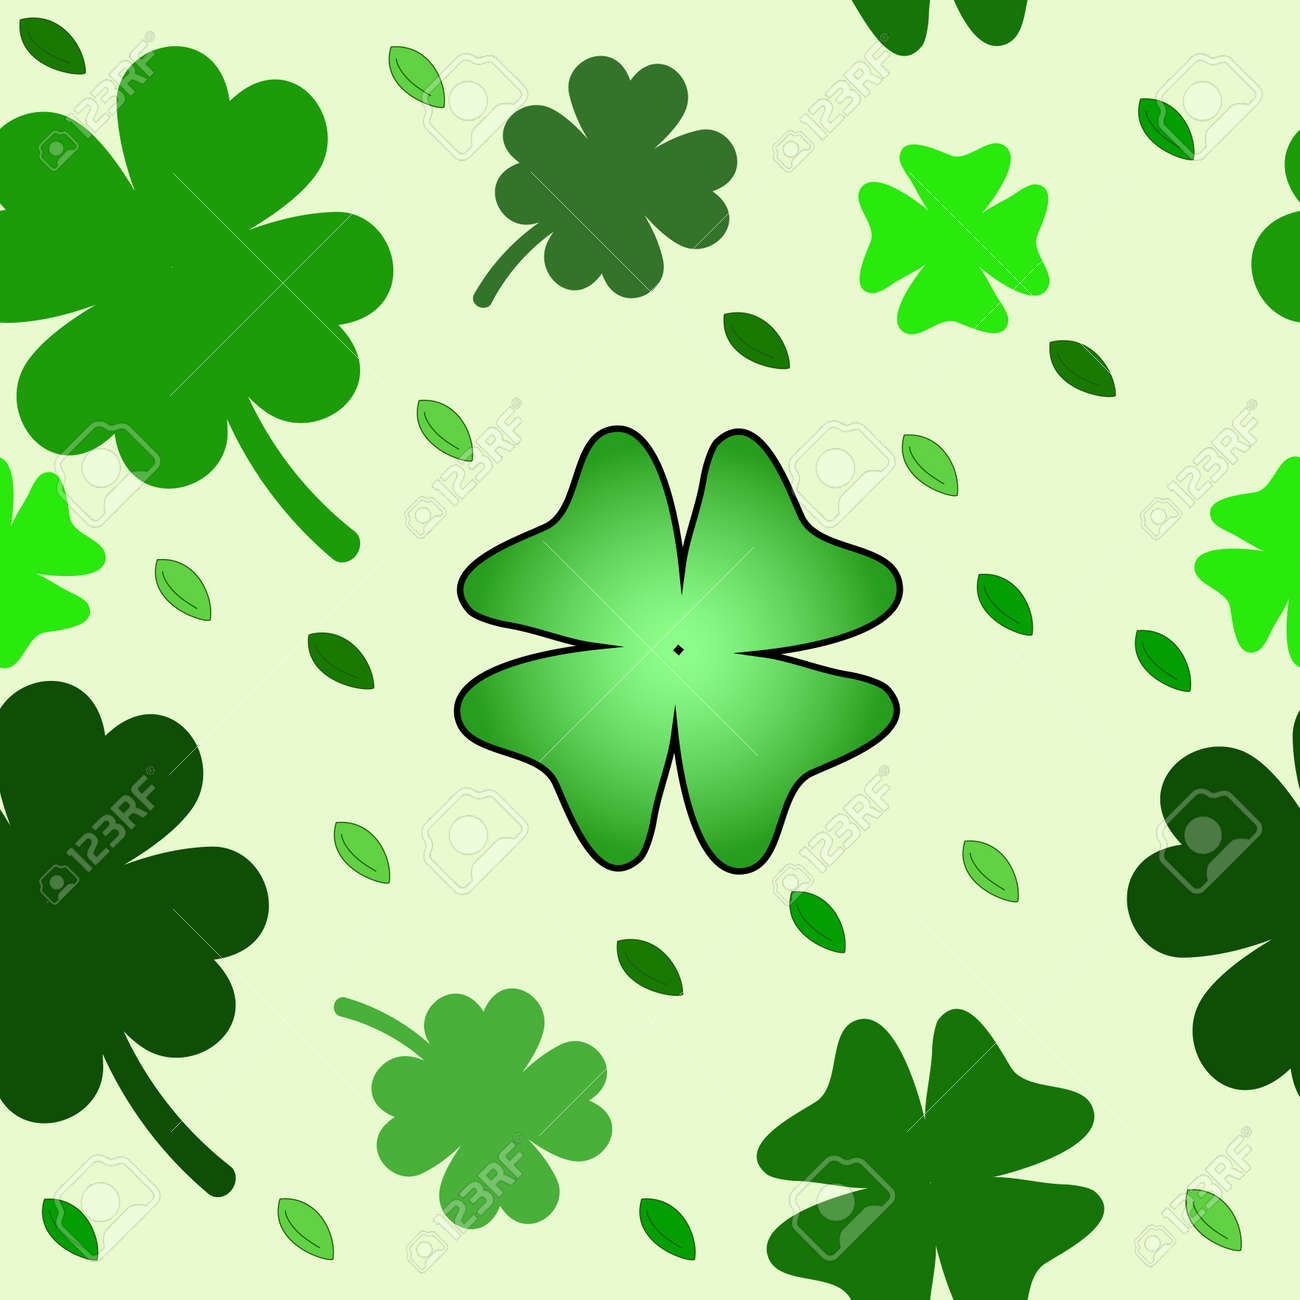 seamless pattern with clover leaves Stock Photo - 8952817